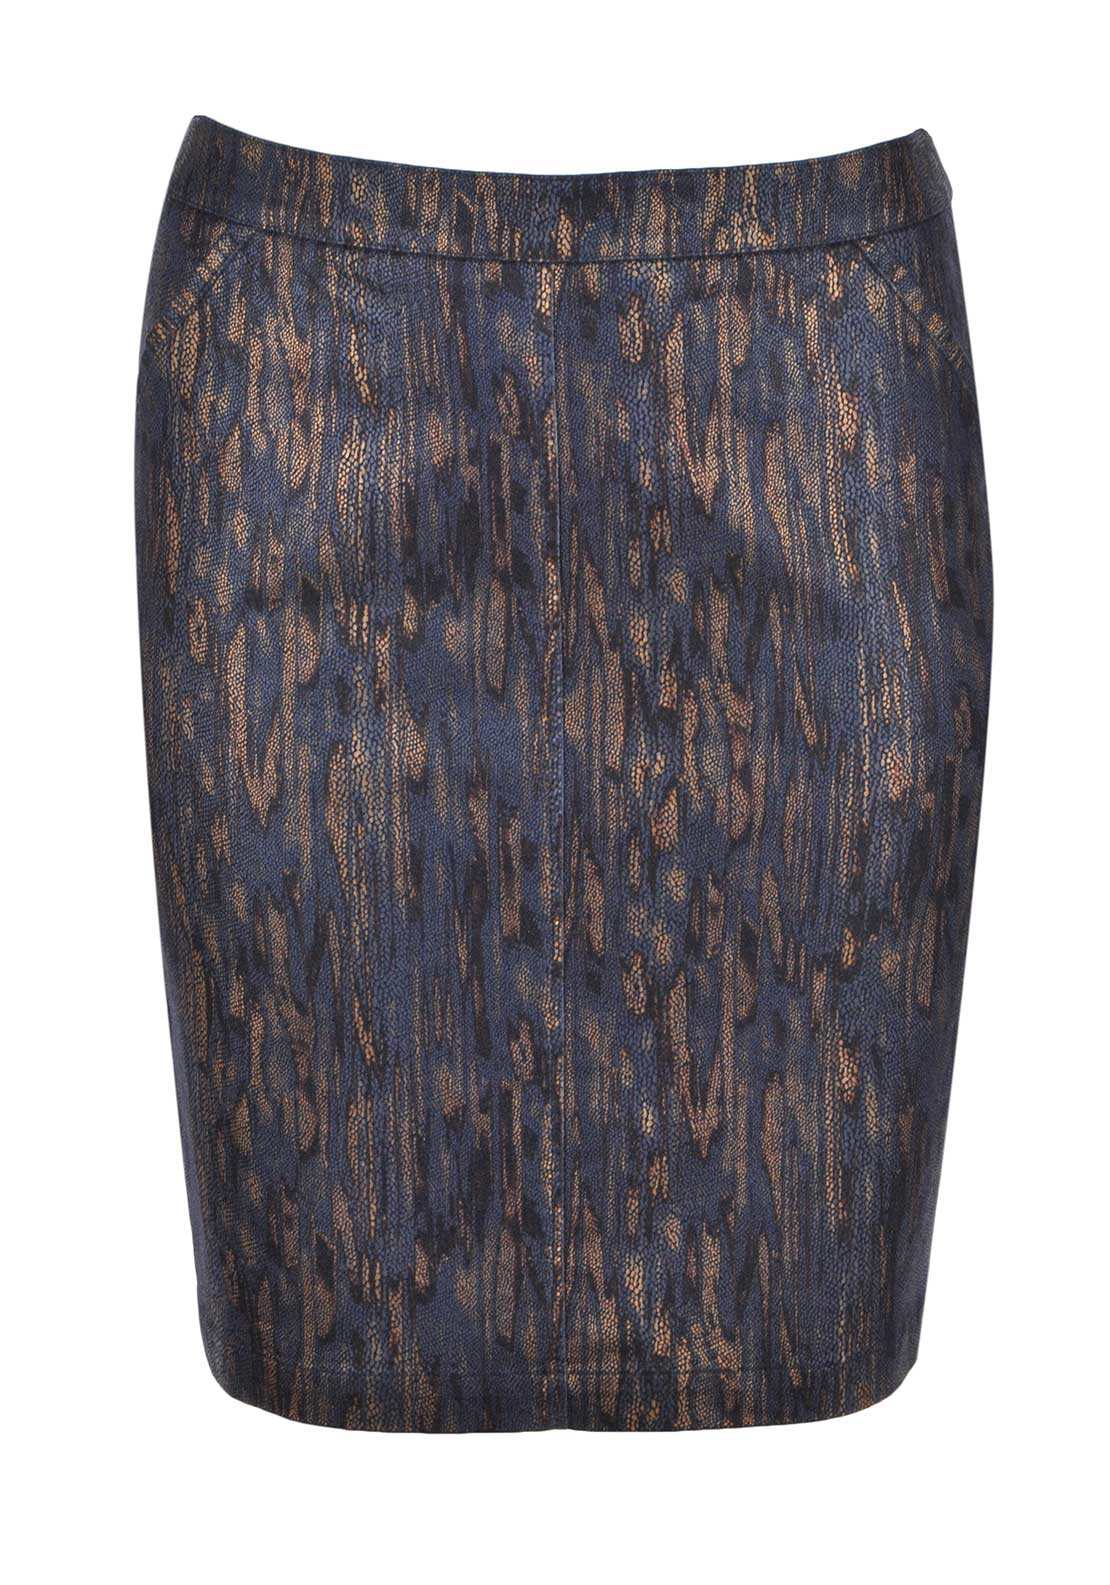 Frank Walder Reptile Print Straight Denim Skirt, Navy and Bronze